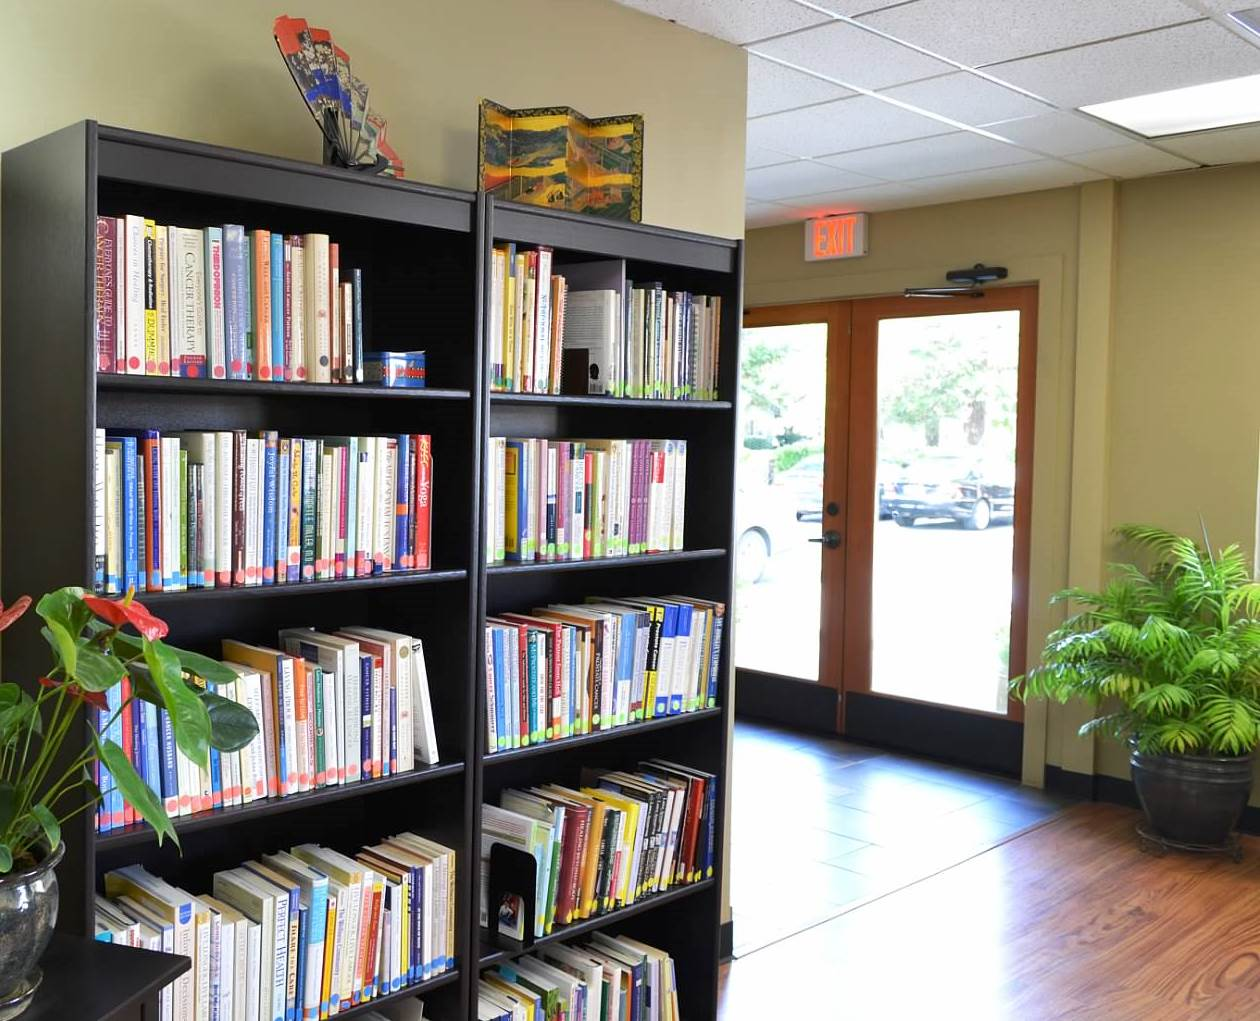 Cancer Resource Library